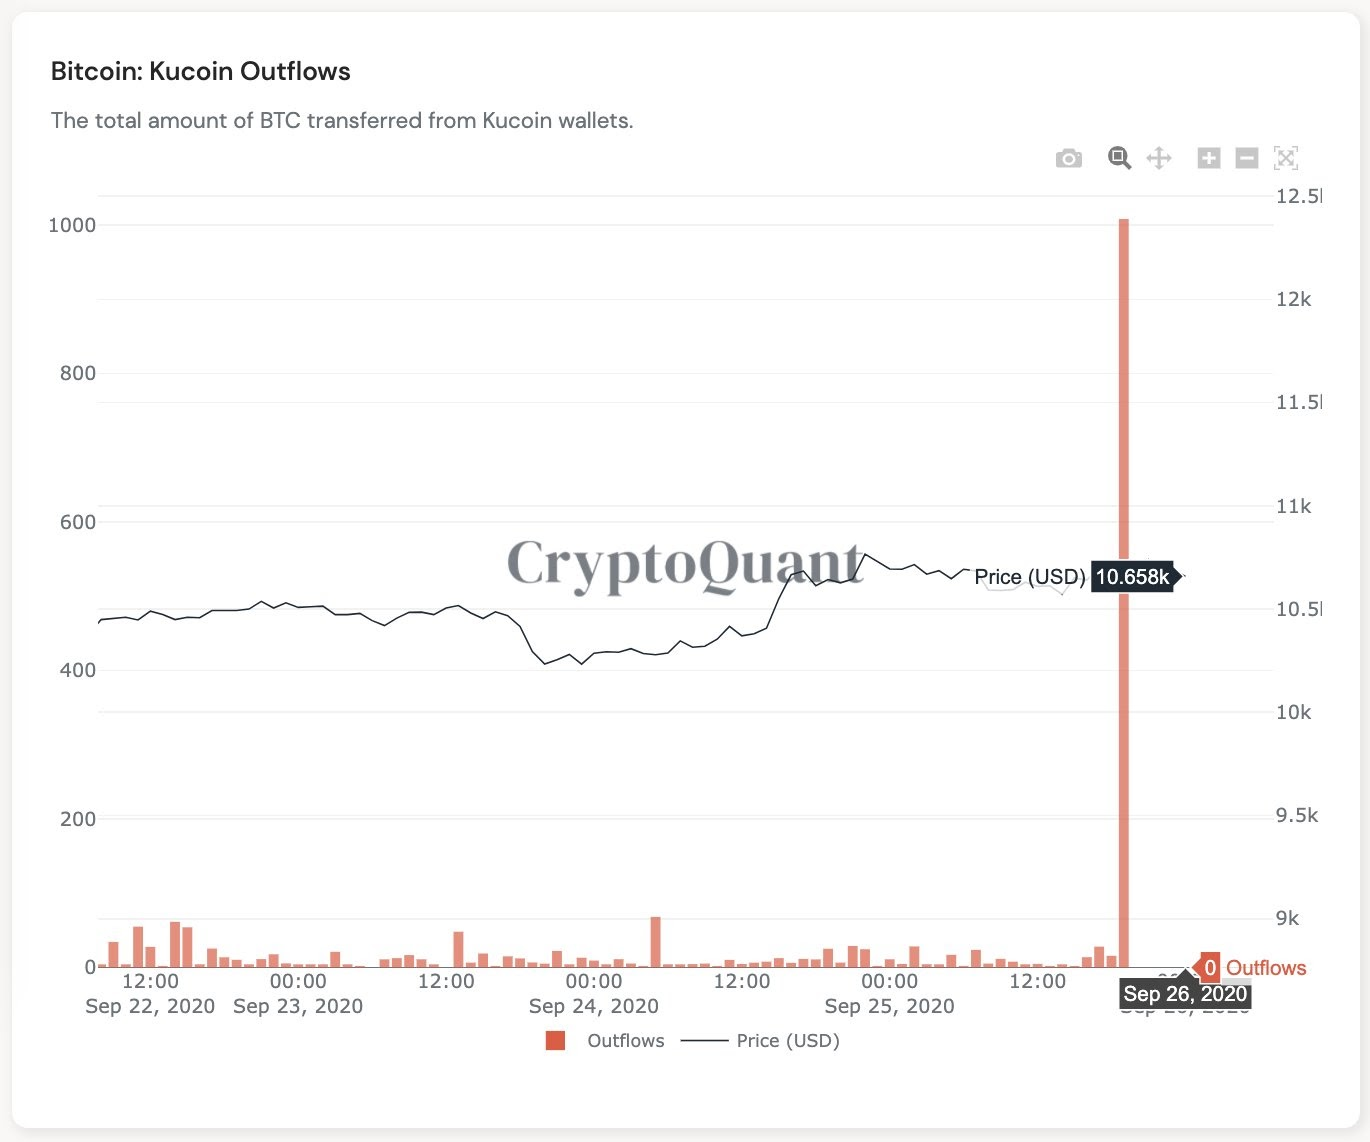 Bitcoin drains on Kucoin after the hack